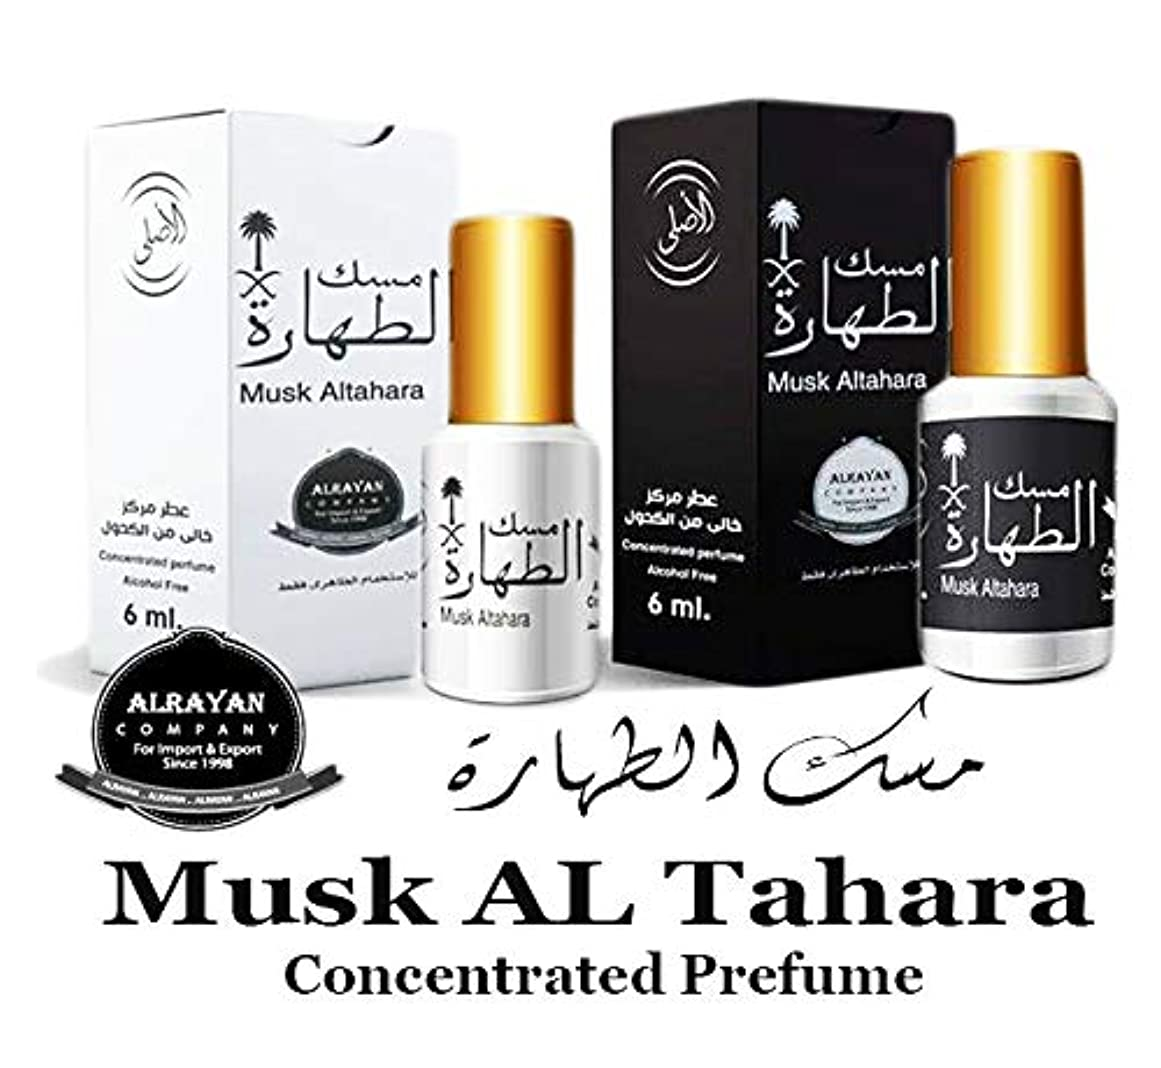 三番ヒップ残るMusk Al tahara Pure Saudi Altahara Perfume White & Black 12 ml Oil Incense Scented Unisex Body Fragrance Alcohol...